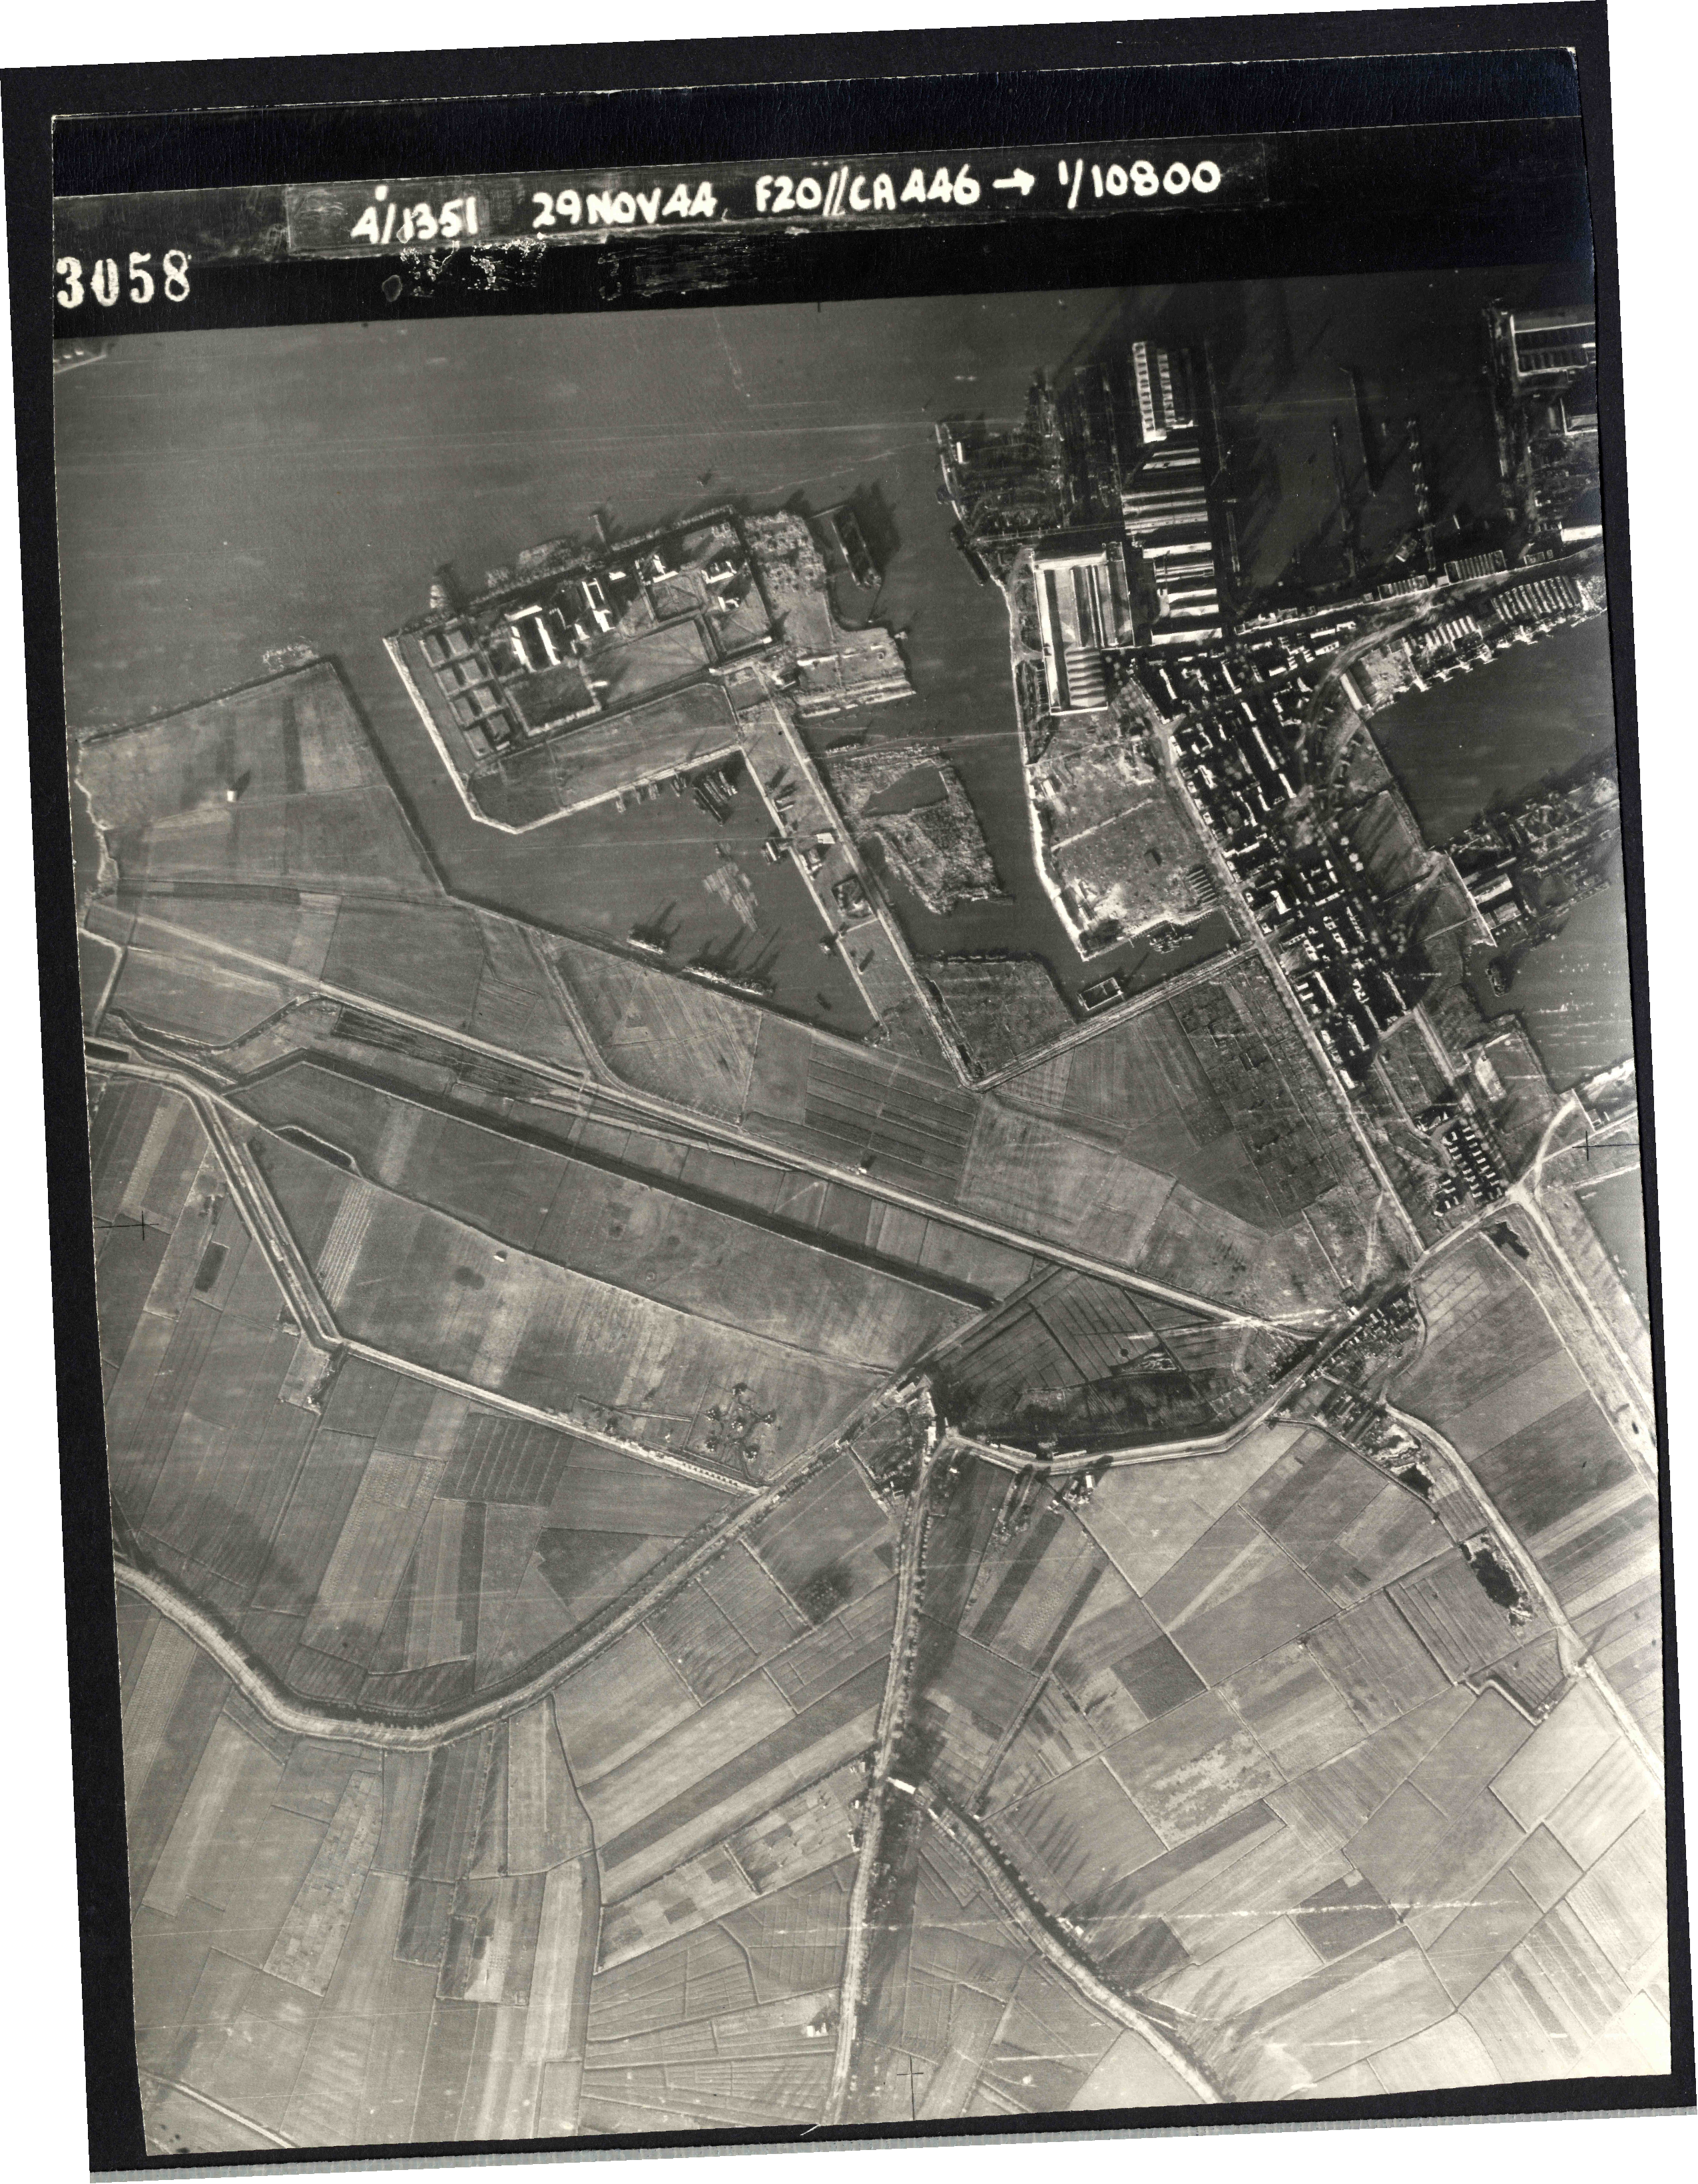 Collection RAF aerial photos 1940-1945 - flight 045, run 03, photo 3058